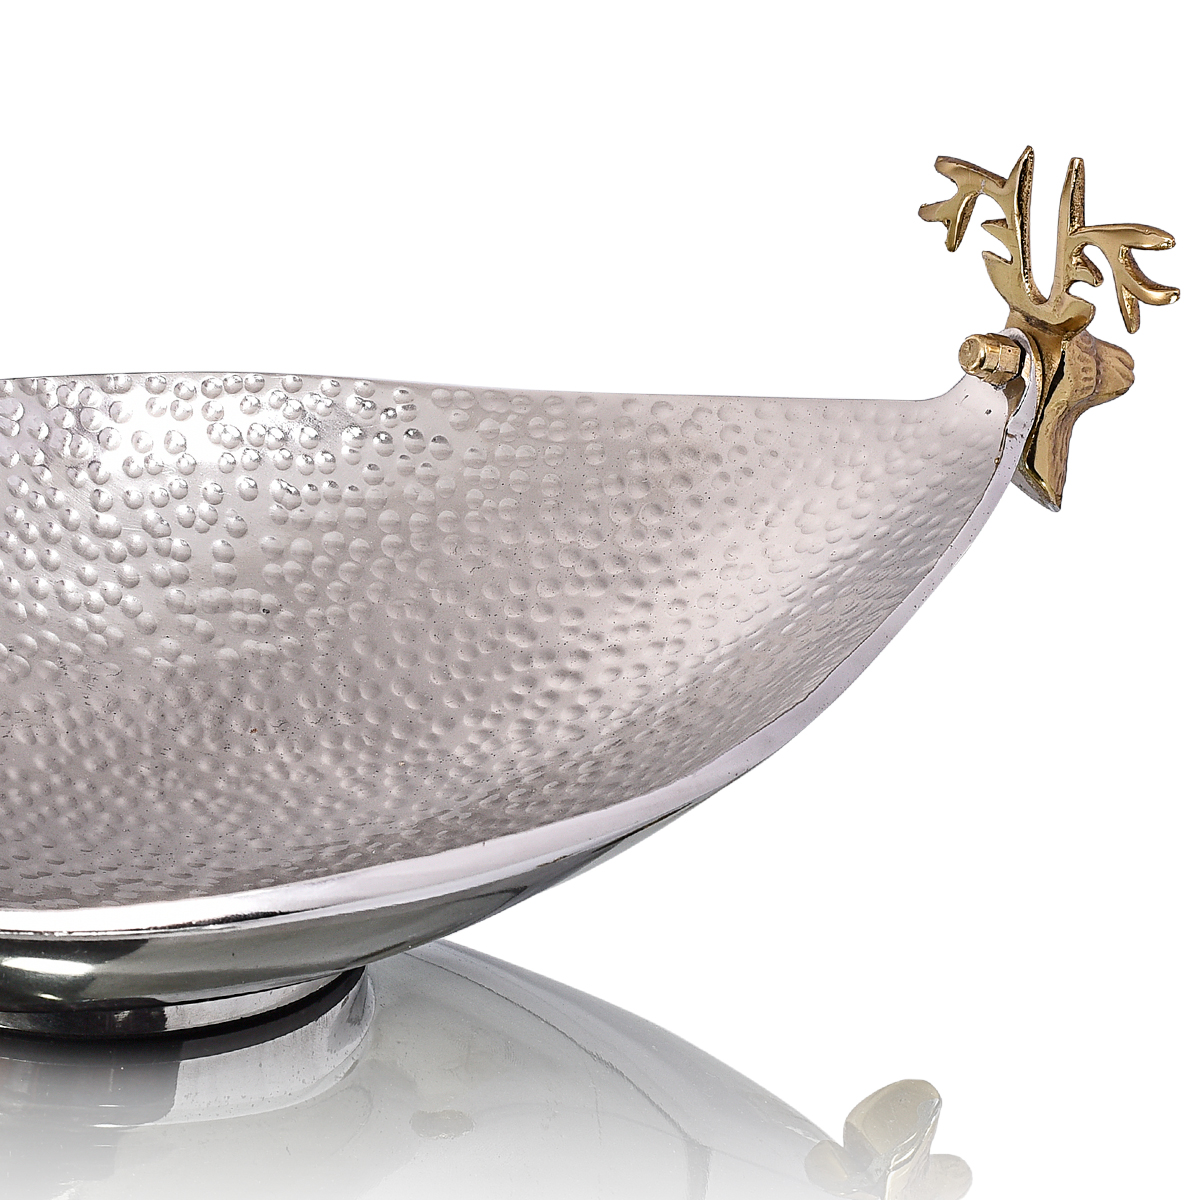 heimars ceirva decor bowl